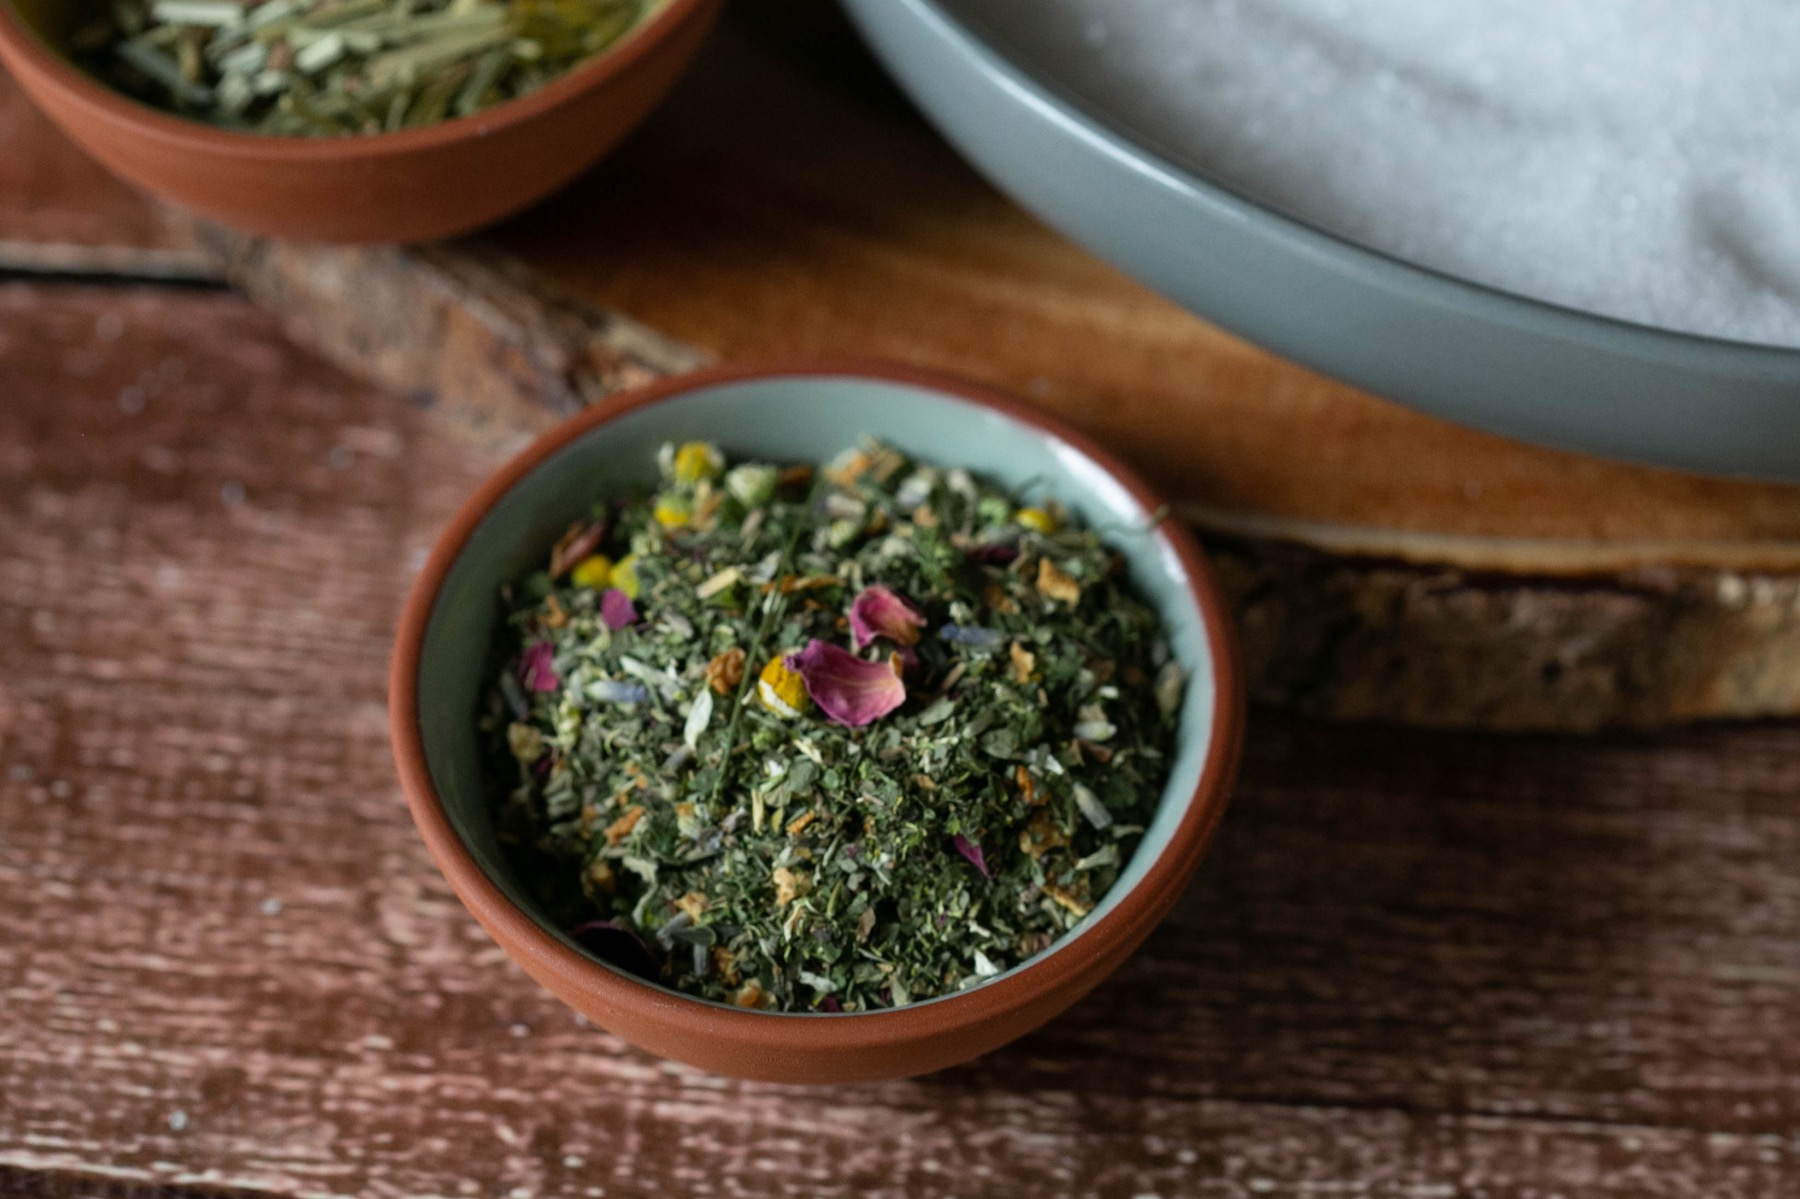 herbs and flowers to add to to diy herbal bath soaks